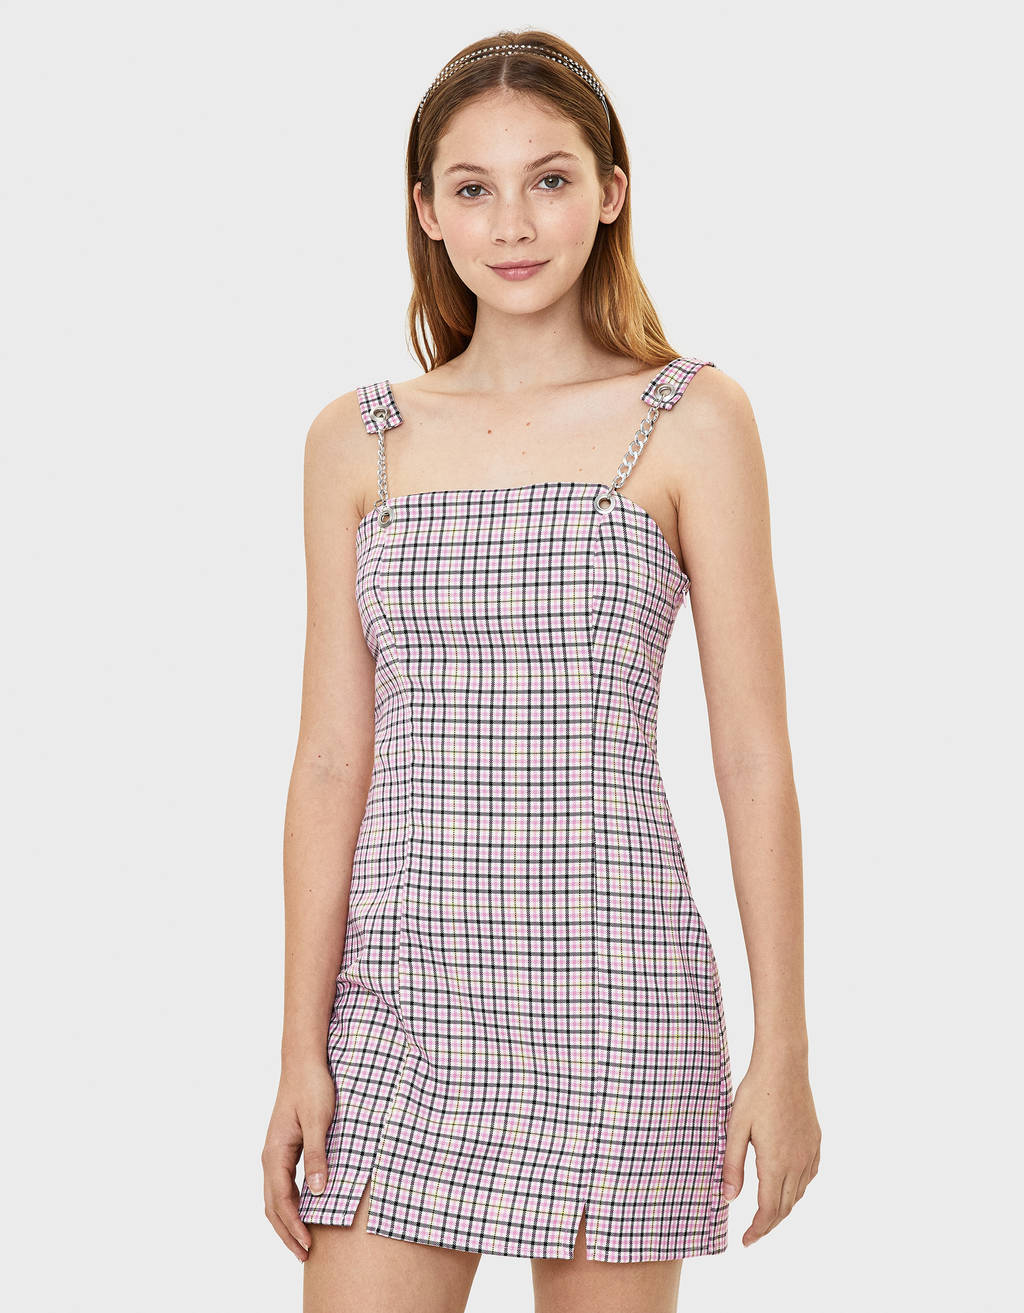 Plaid overall dress with chain straps